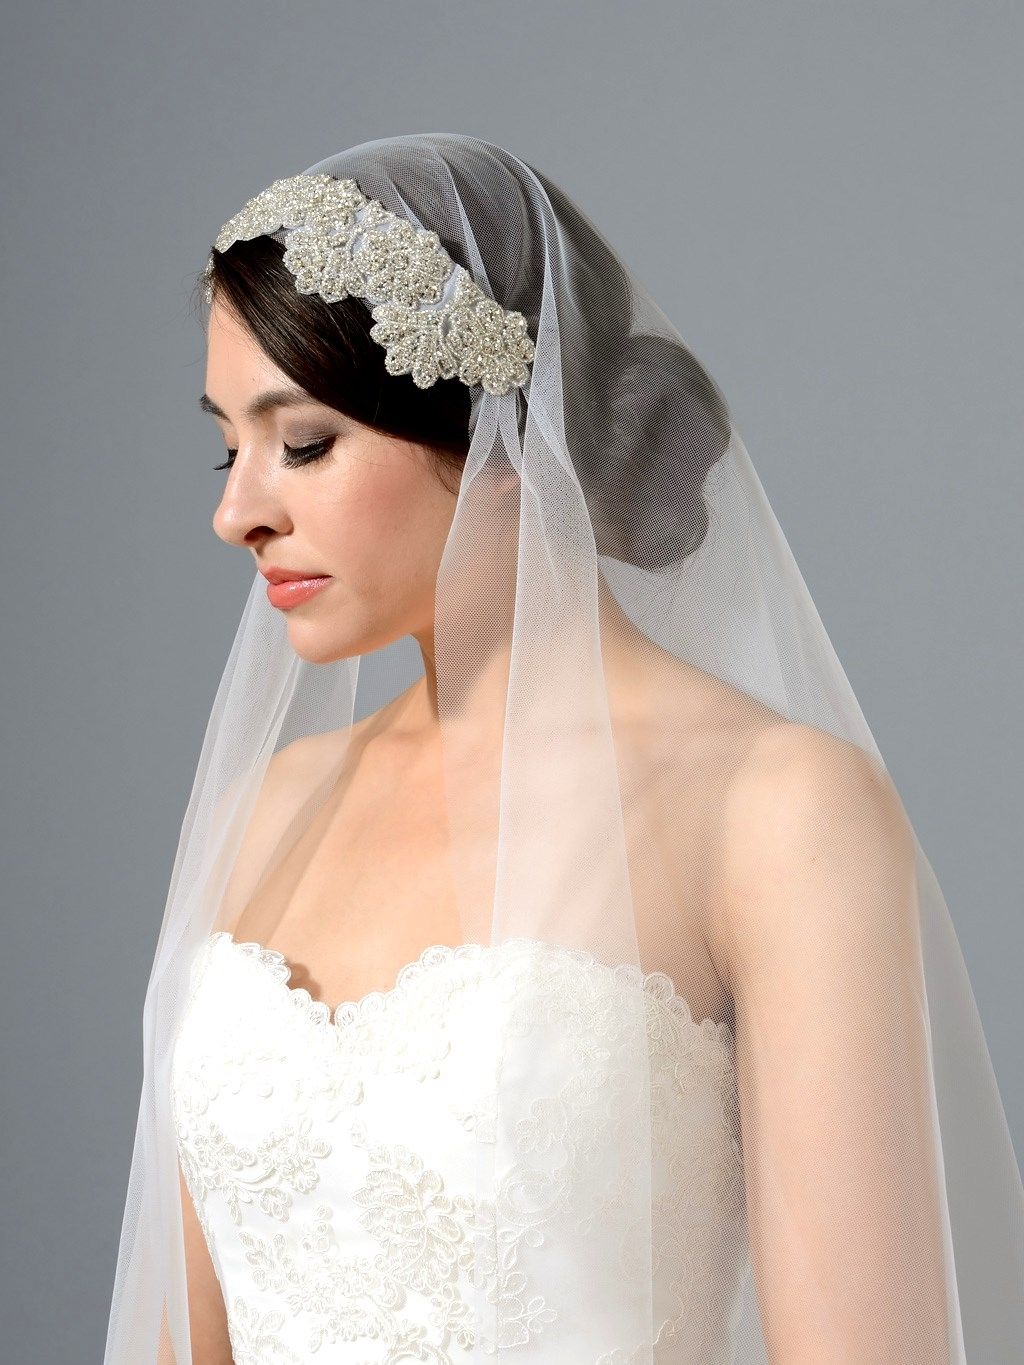 Favorite Bridal Hairstyles For Medium Length Hair With Veil In Great Wedding Hairstyles With Veils (View 4 of 15)